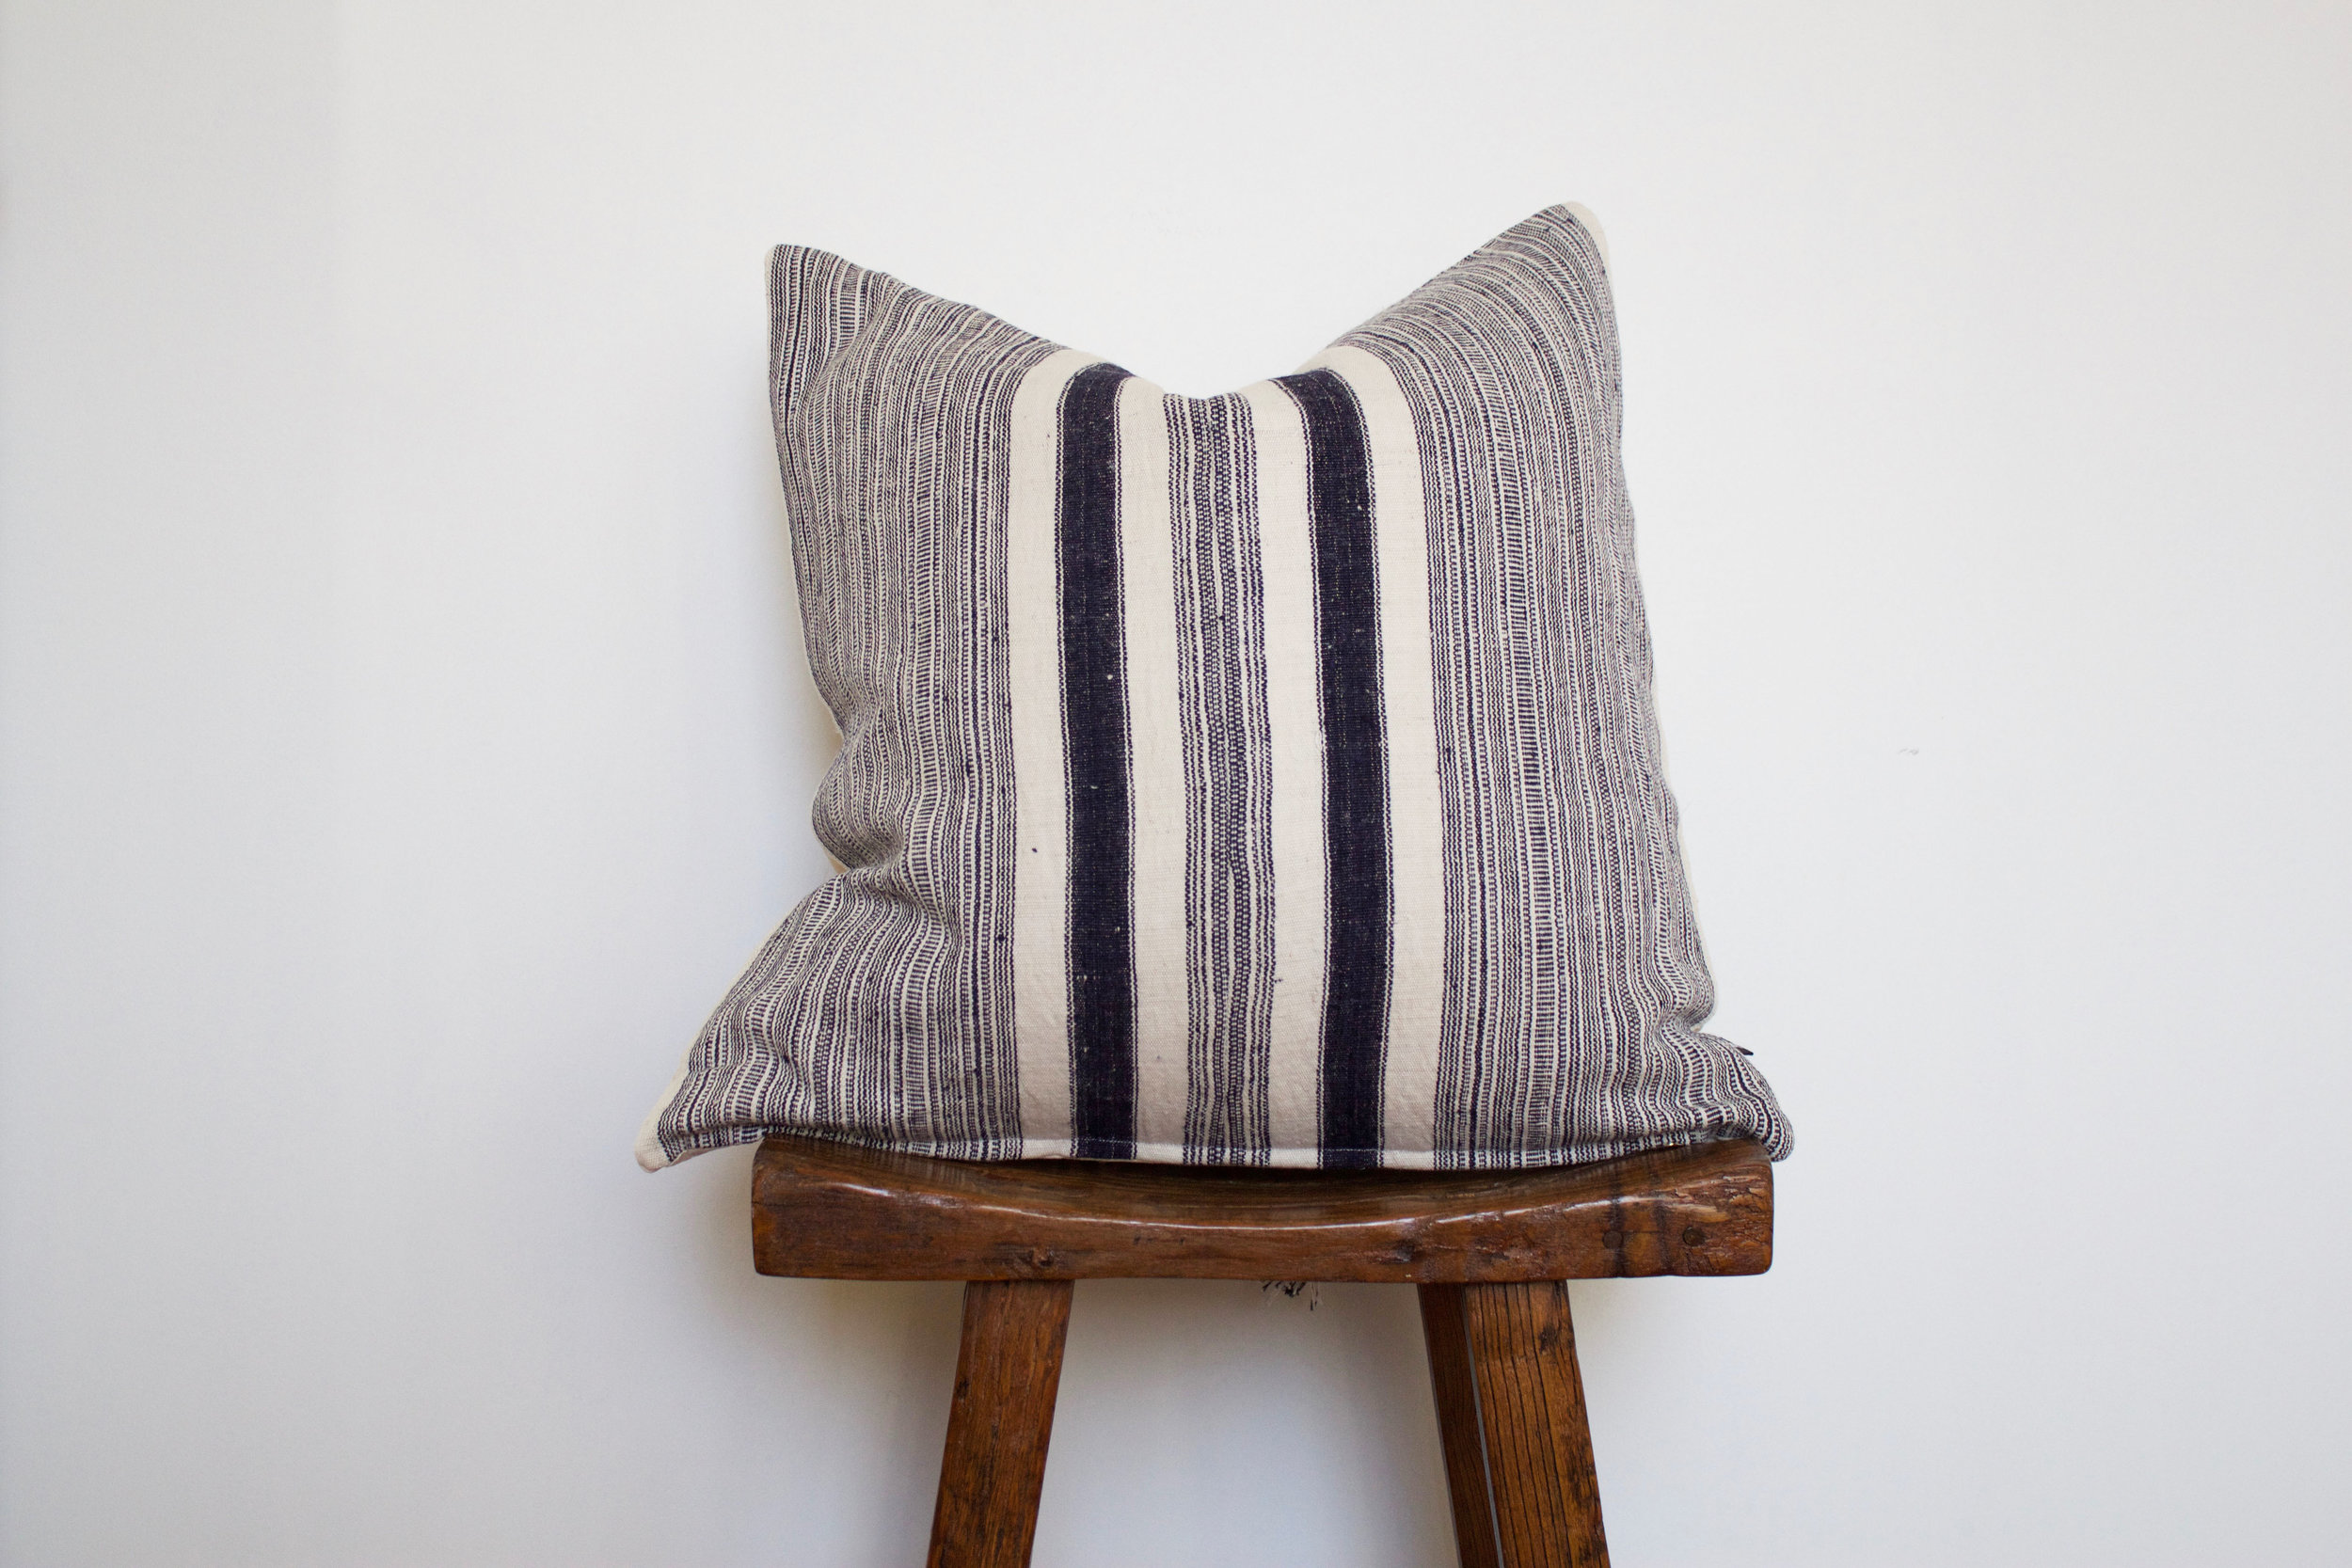 Tristen - No. 132   350 RMB  Pillow cover is made from handwoven hemp fabric sourced from Northern Thailand  Size: Roughly 50x50 cm  Pillow back is made from a neutral cotton/linen blend  Zipper on bottom of pillow  Down insert included  Hand wash in cold water